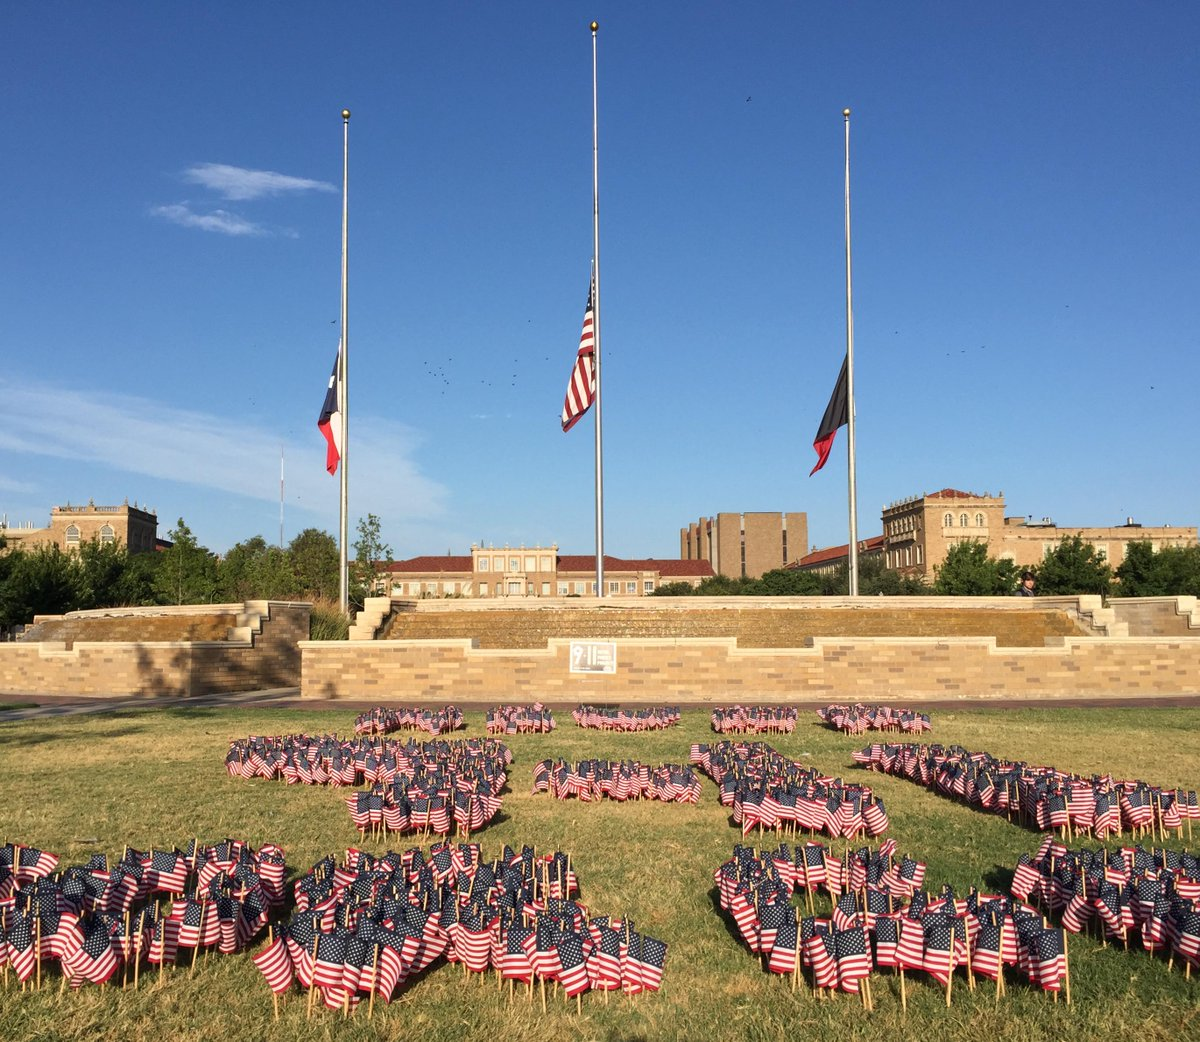 #TexasTech will #NeverForget. http://t.co/RiVAcVRAW5